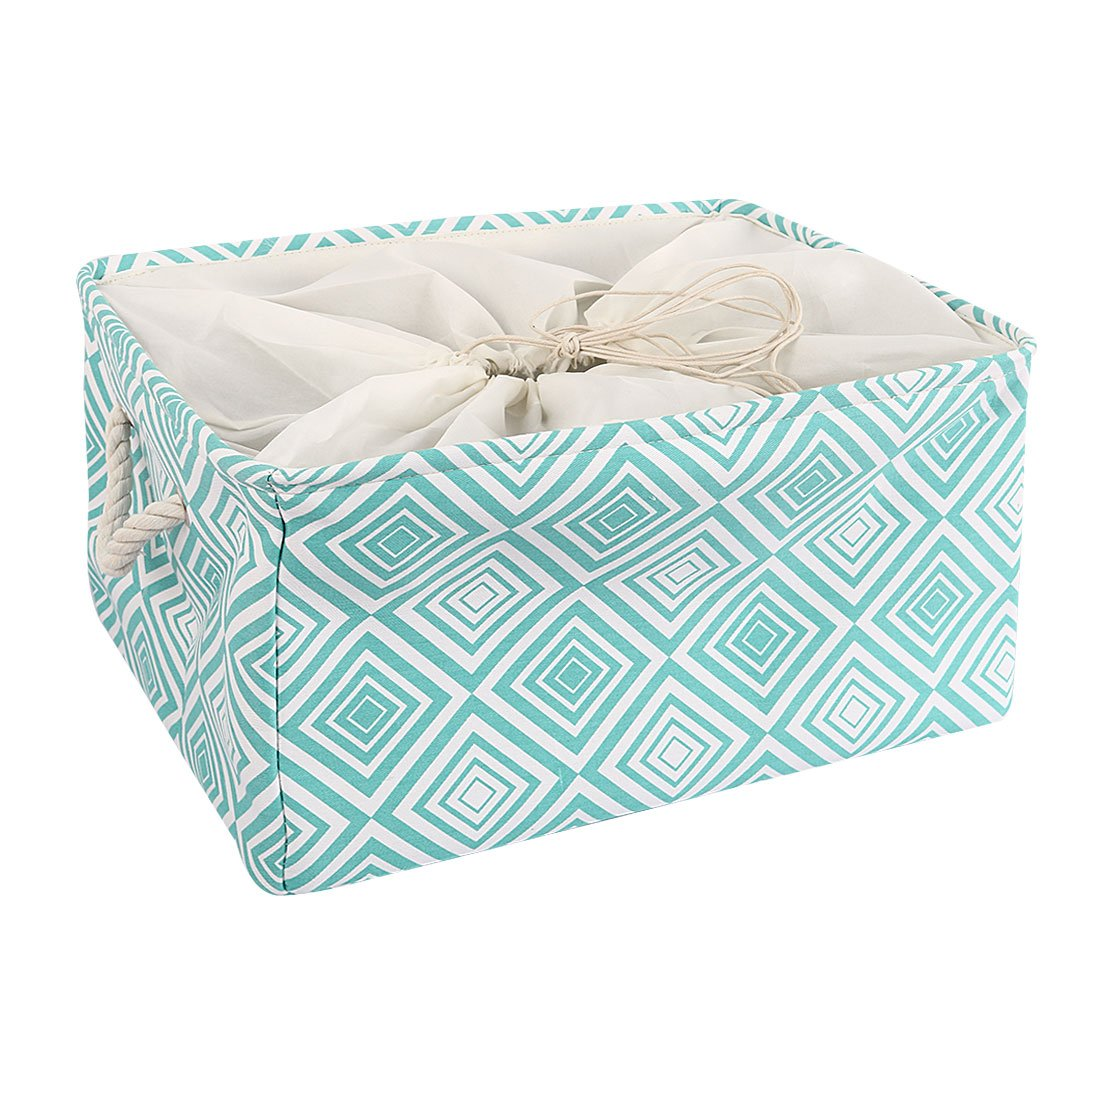 uxcell Storage Baskets w Cotton Handles Foldable Storage Toy Bins Laundry Basket Clothes Towel Organizer w Drawstring Closure for Home,Shelves,Closet 17.7'' x 13.8'' x 10'' (Green,X-Large)